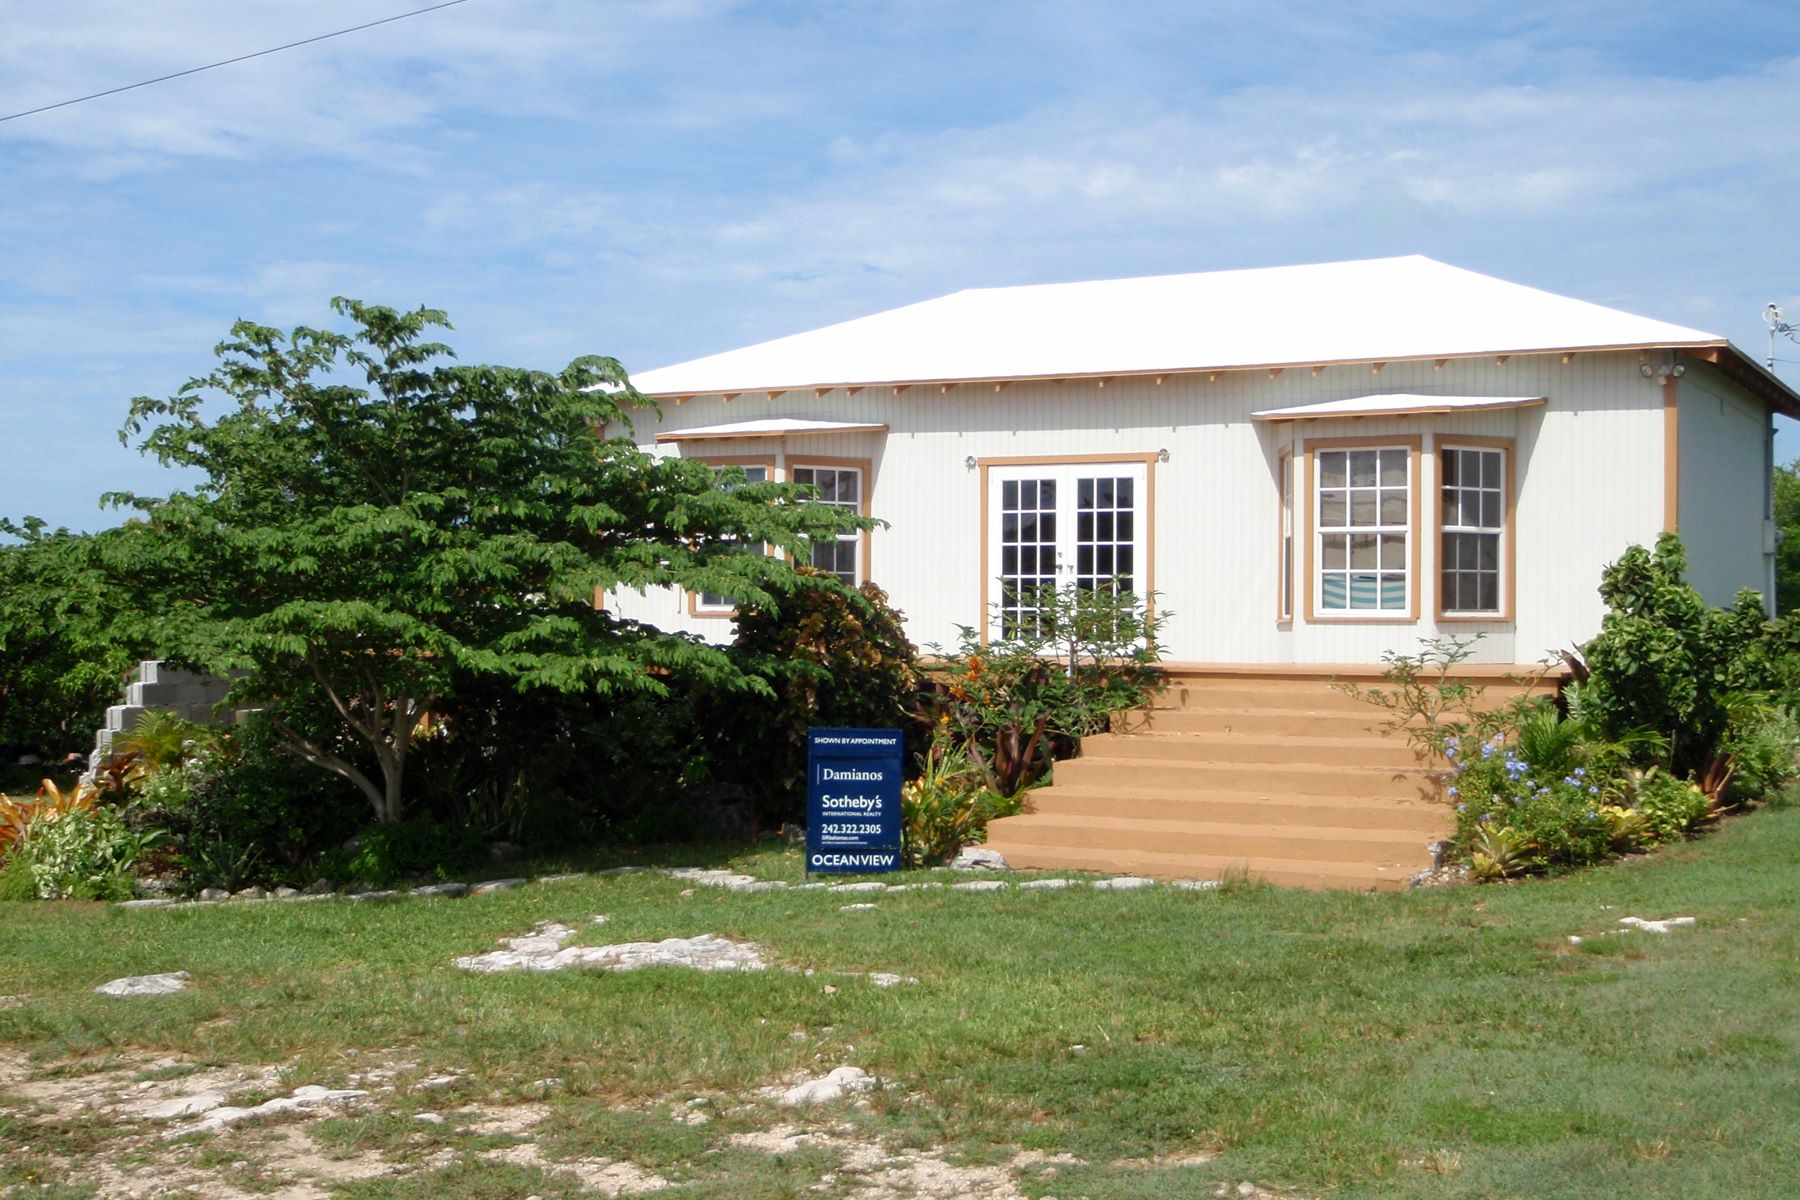 Maison unifamiliale pour l Vente à Great Potential! Explore the possibilities! Vivian Pinder Road Spanish Wells, Eleuthera 0 Bahamas